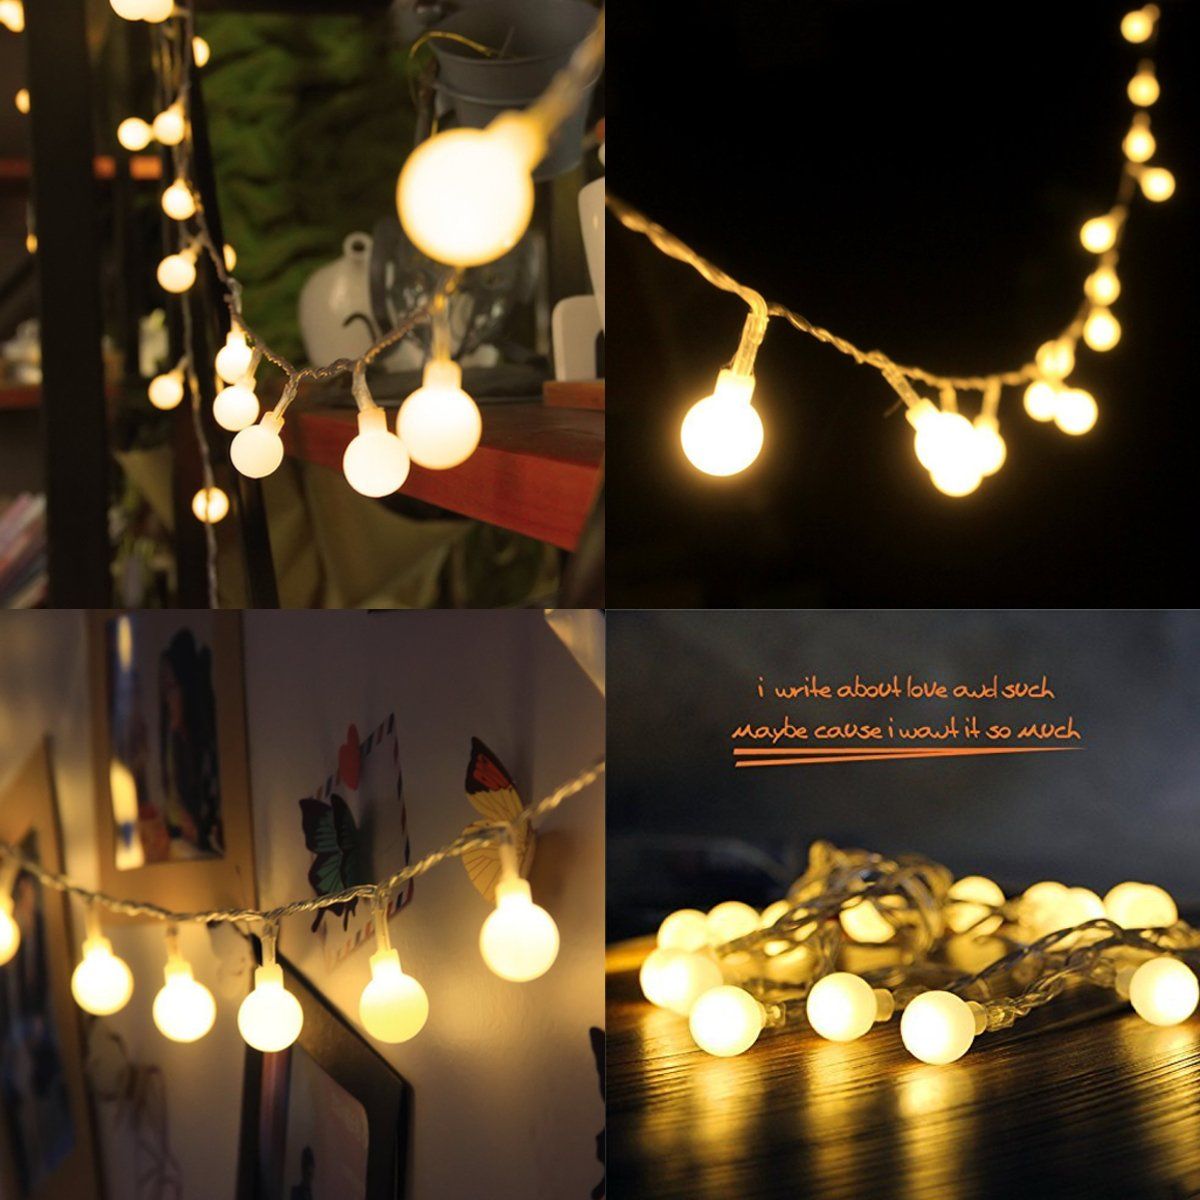 amazoncom 4m 40 led ball styled string lights battery operated for christmas partys wedding new year decorations etc warm white home u0026 kitchen